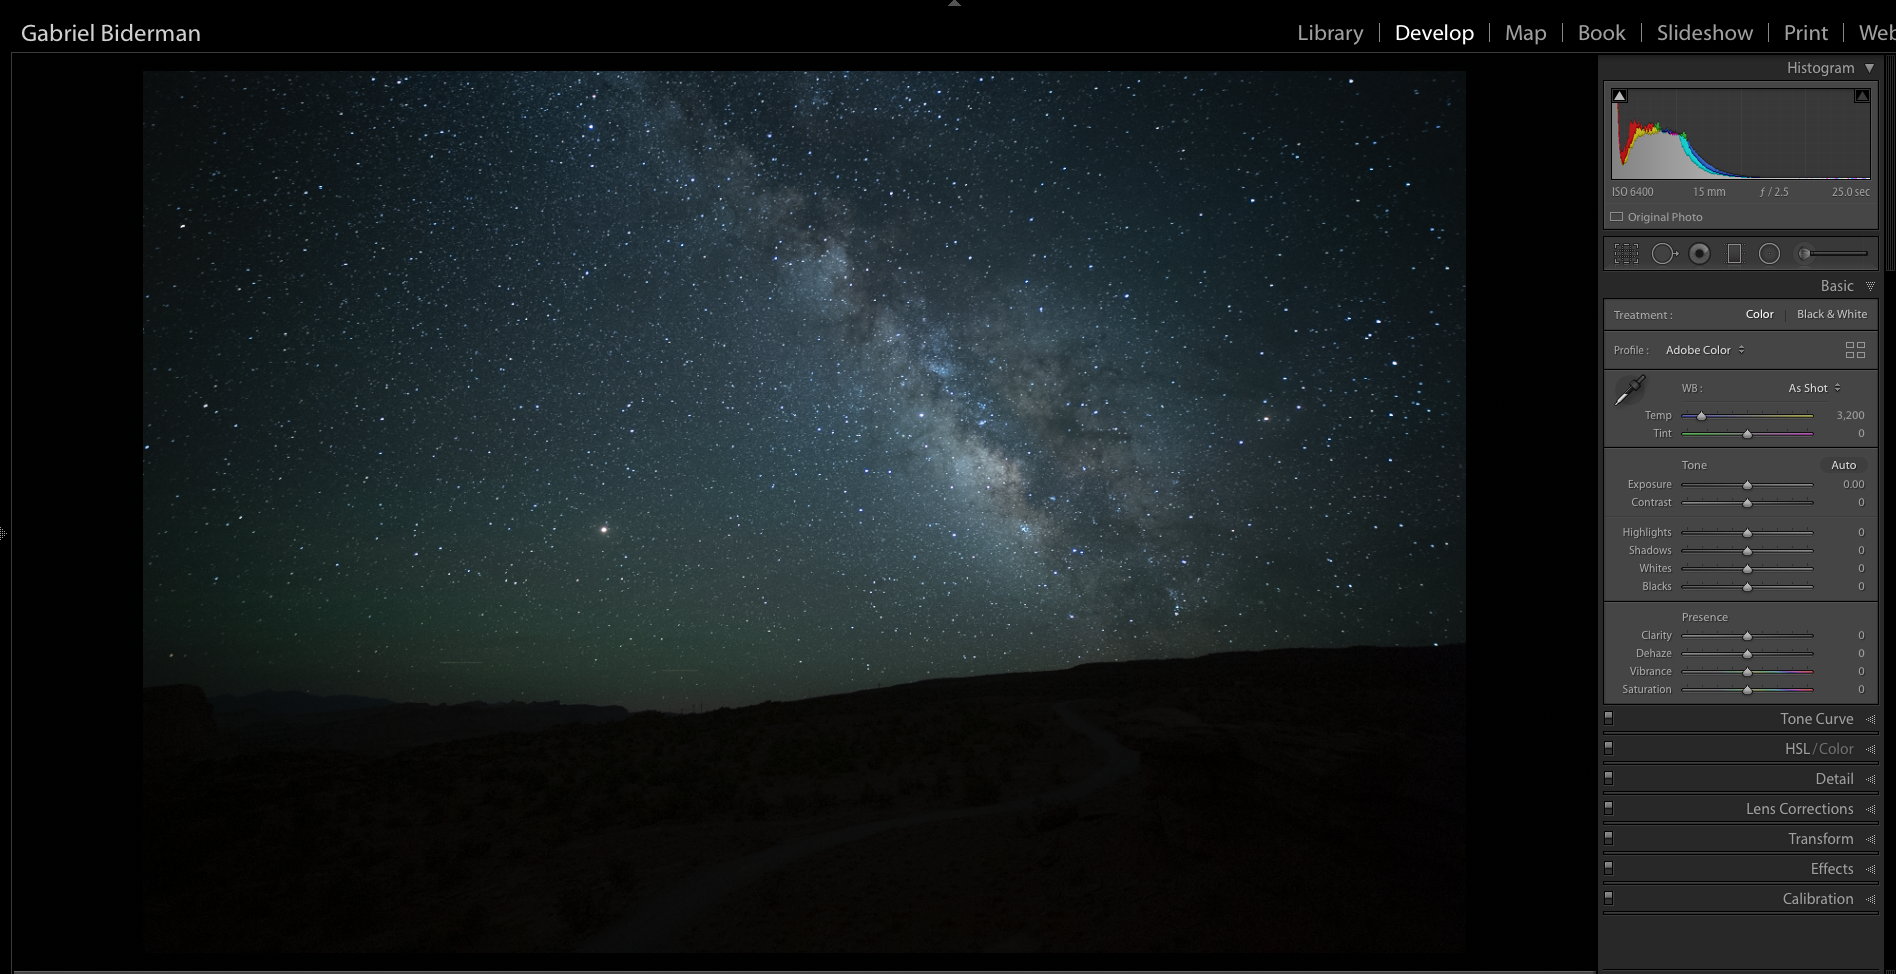 Figure 1.  Nikon D5  with an  Irix 15mm f/2.4  lens. 25 seconds, f/2.5, ISO 6400.